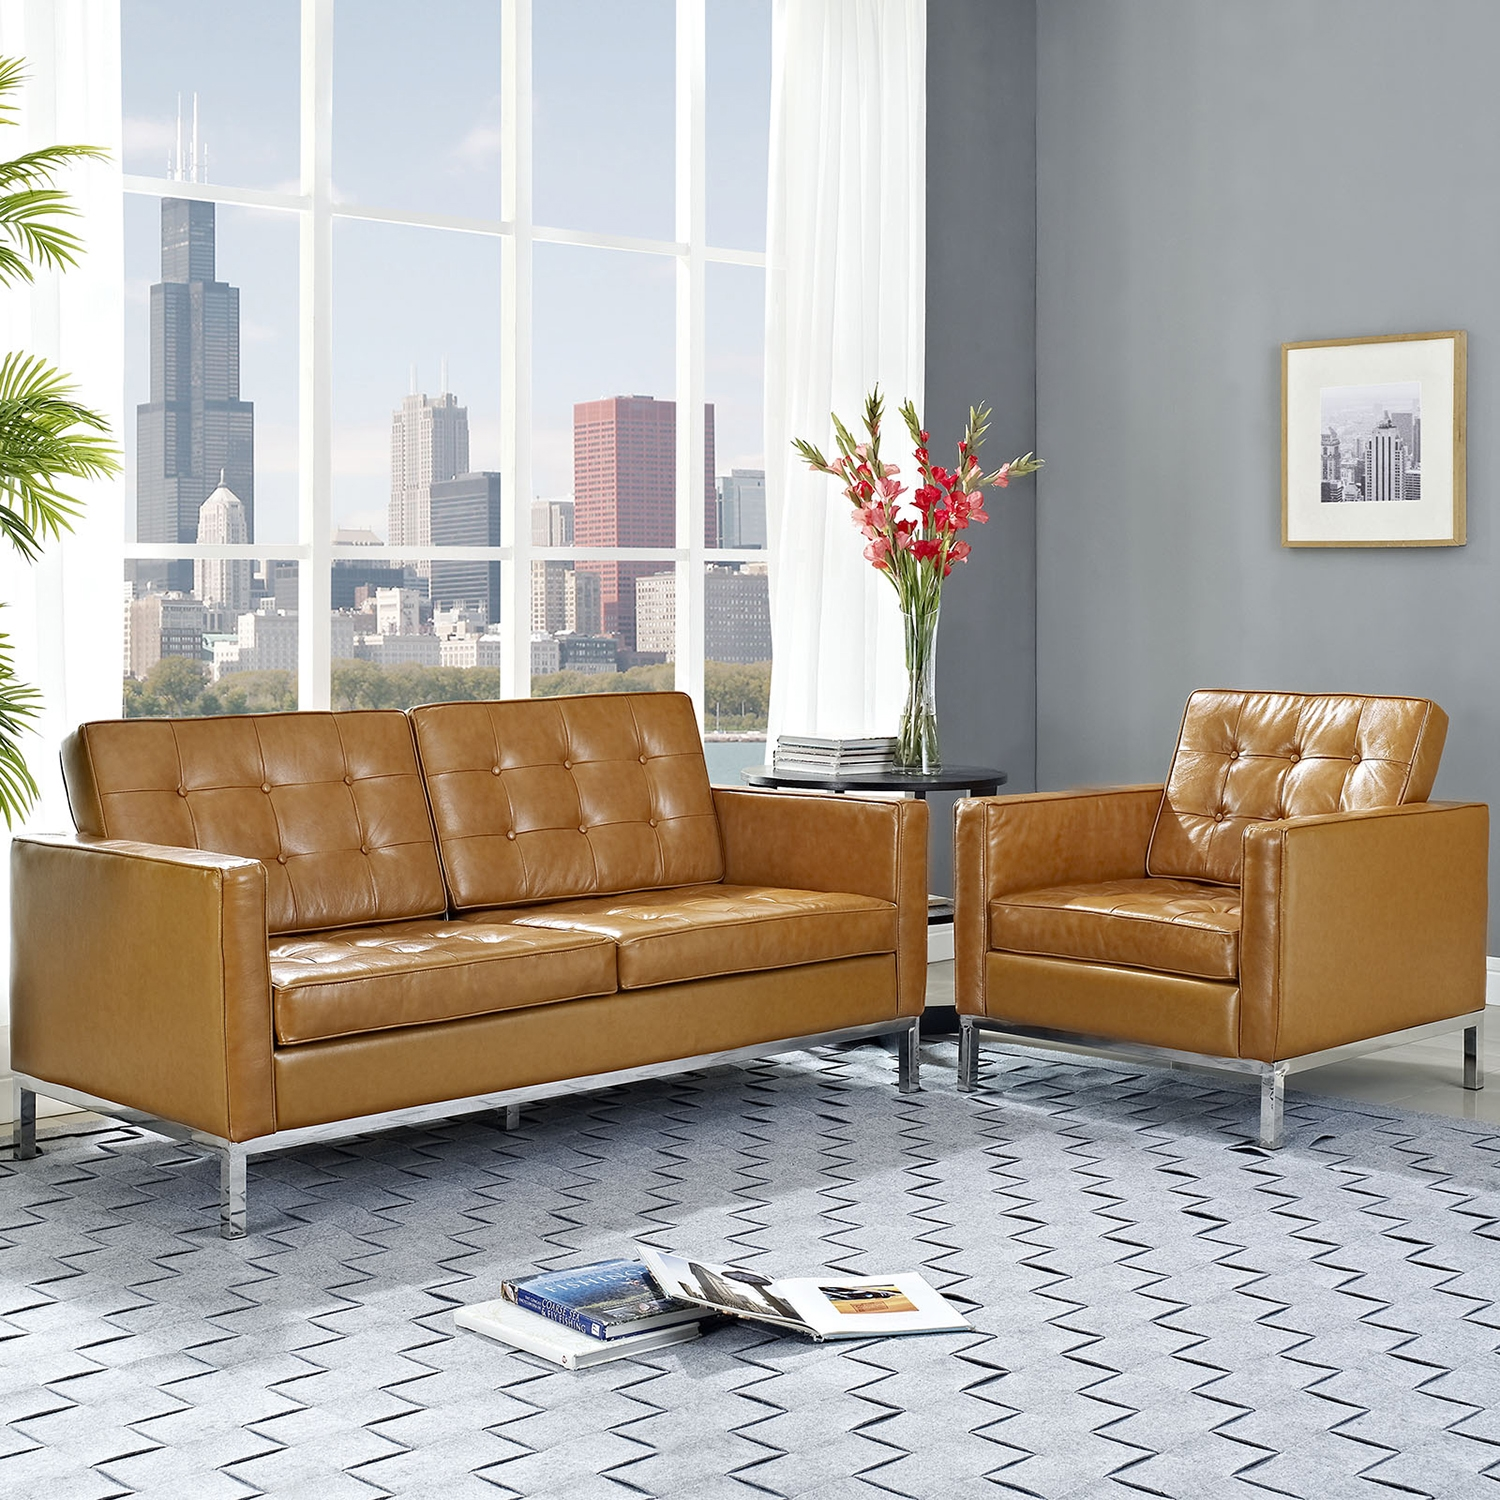 Loft 2 Pieces Armchair and Loveseat - Tufted, Leather, Tan - EEI-1269-TAN